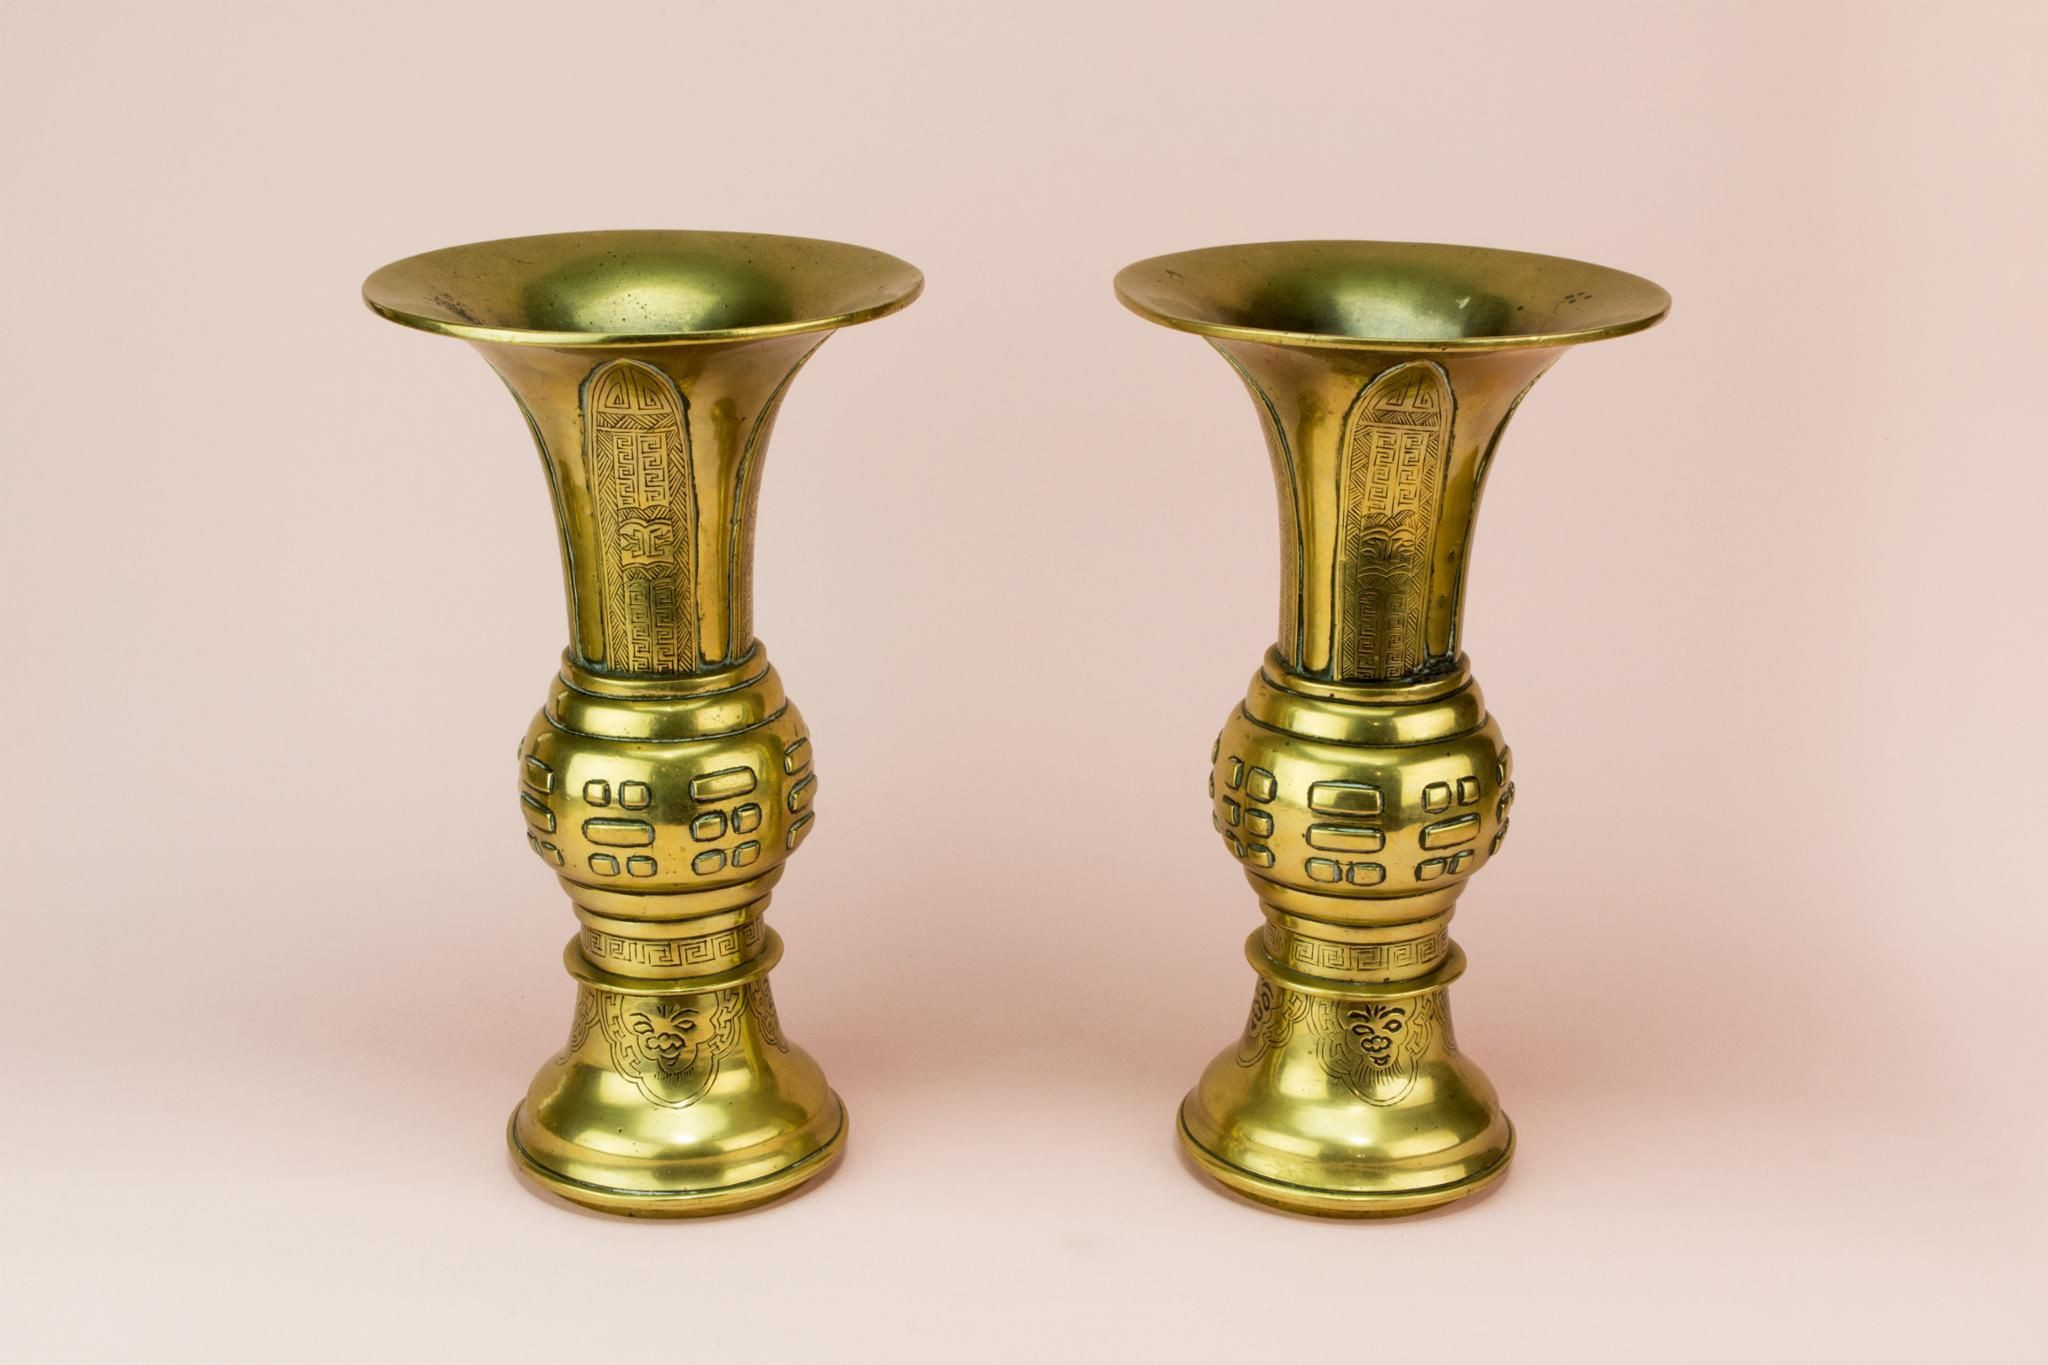 lenox vases prices of 44 gold and silver vase the weekly world within 2 gu shaped brass vases chinese 19th century late 19th century